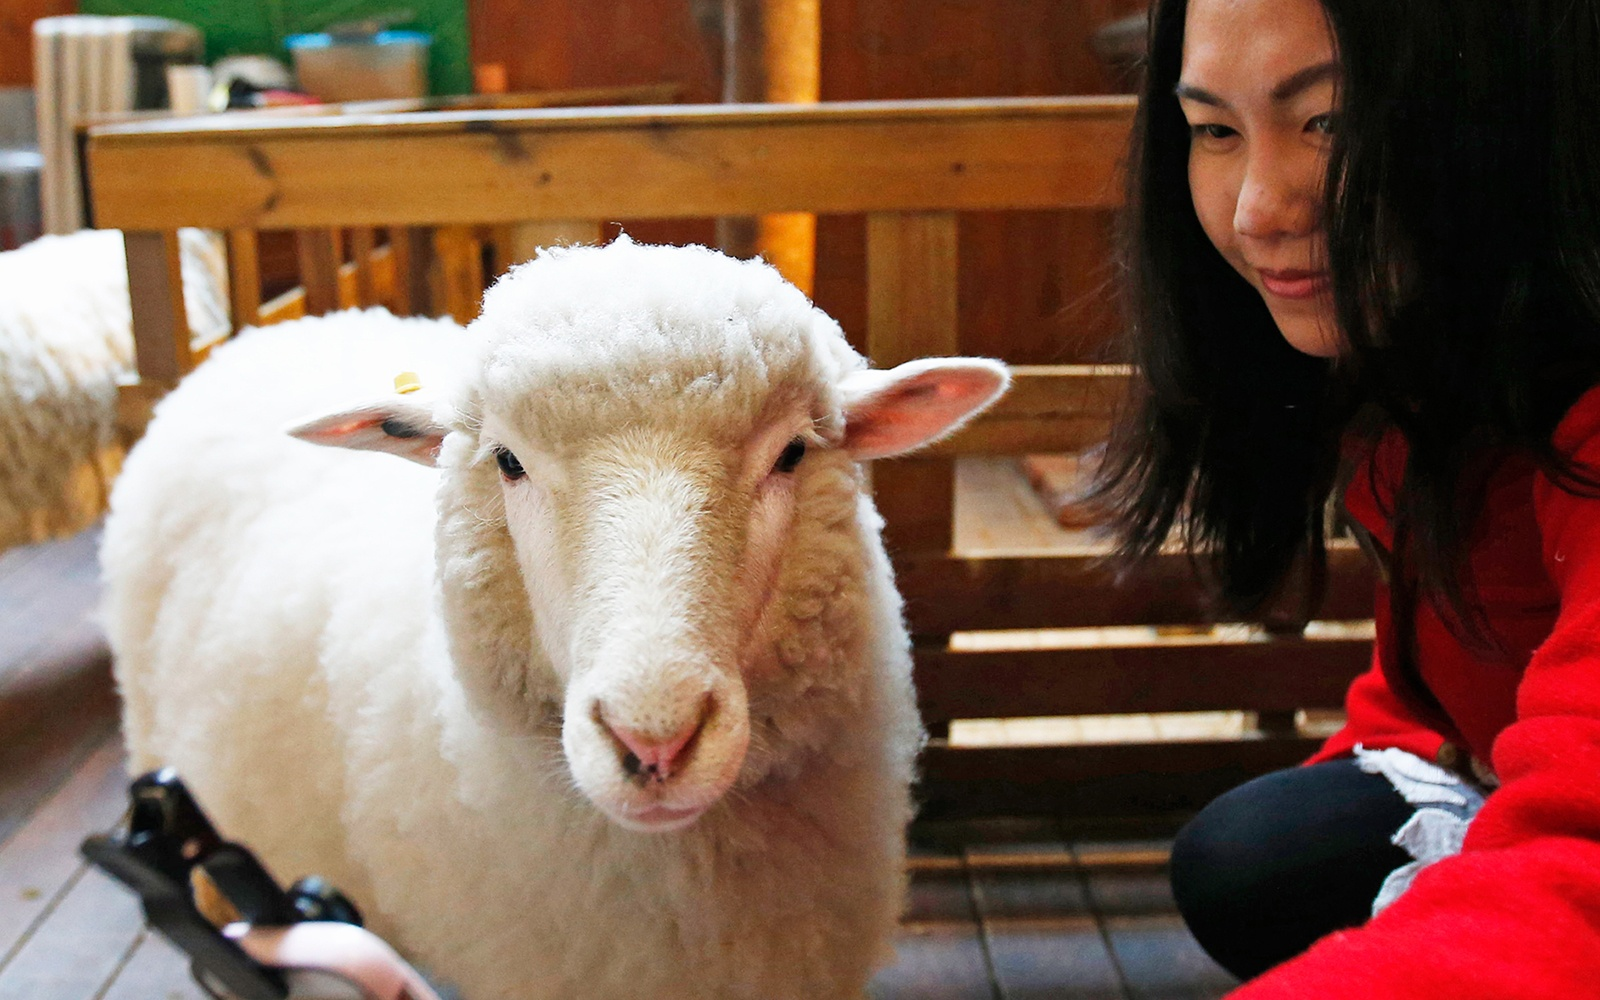 Thanks Nature, Cafe, sheep, selfie, Seoul, North Korea